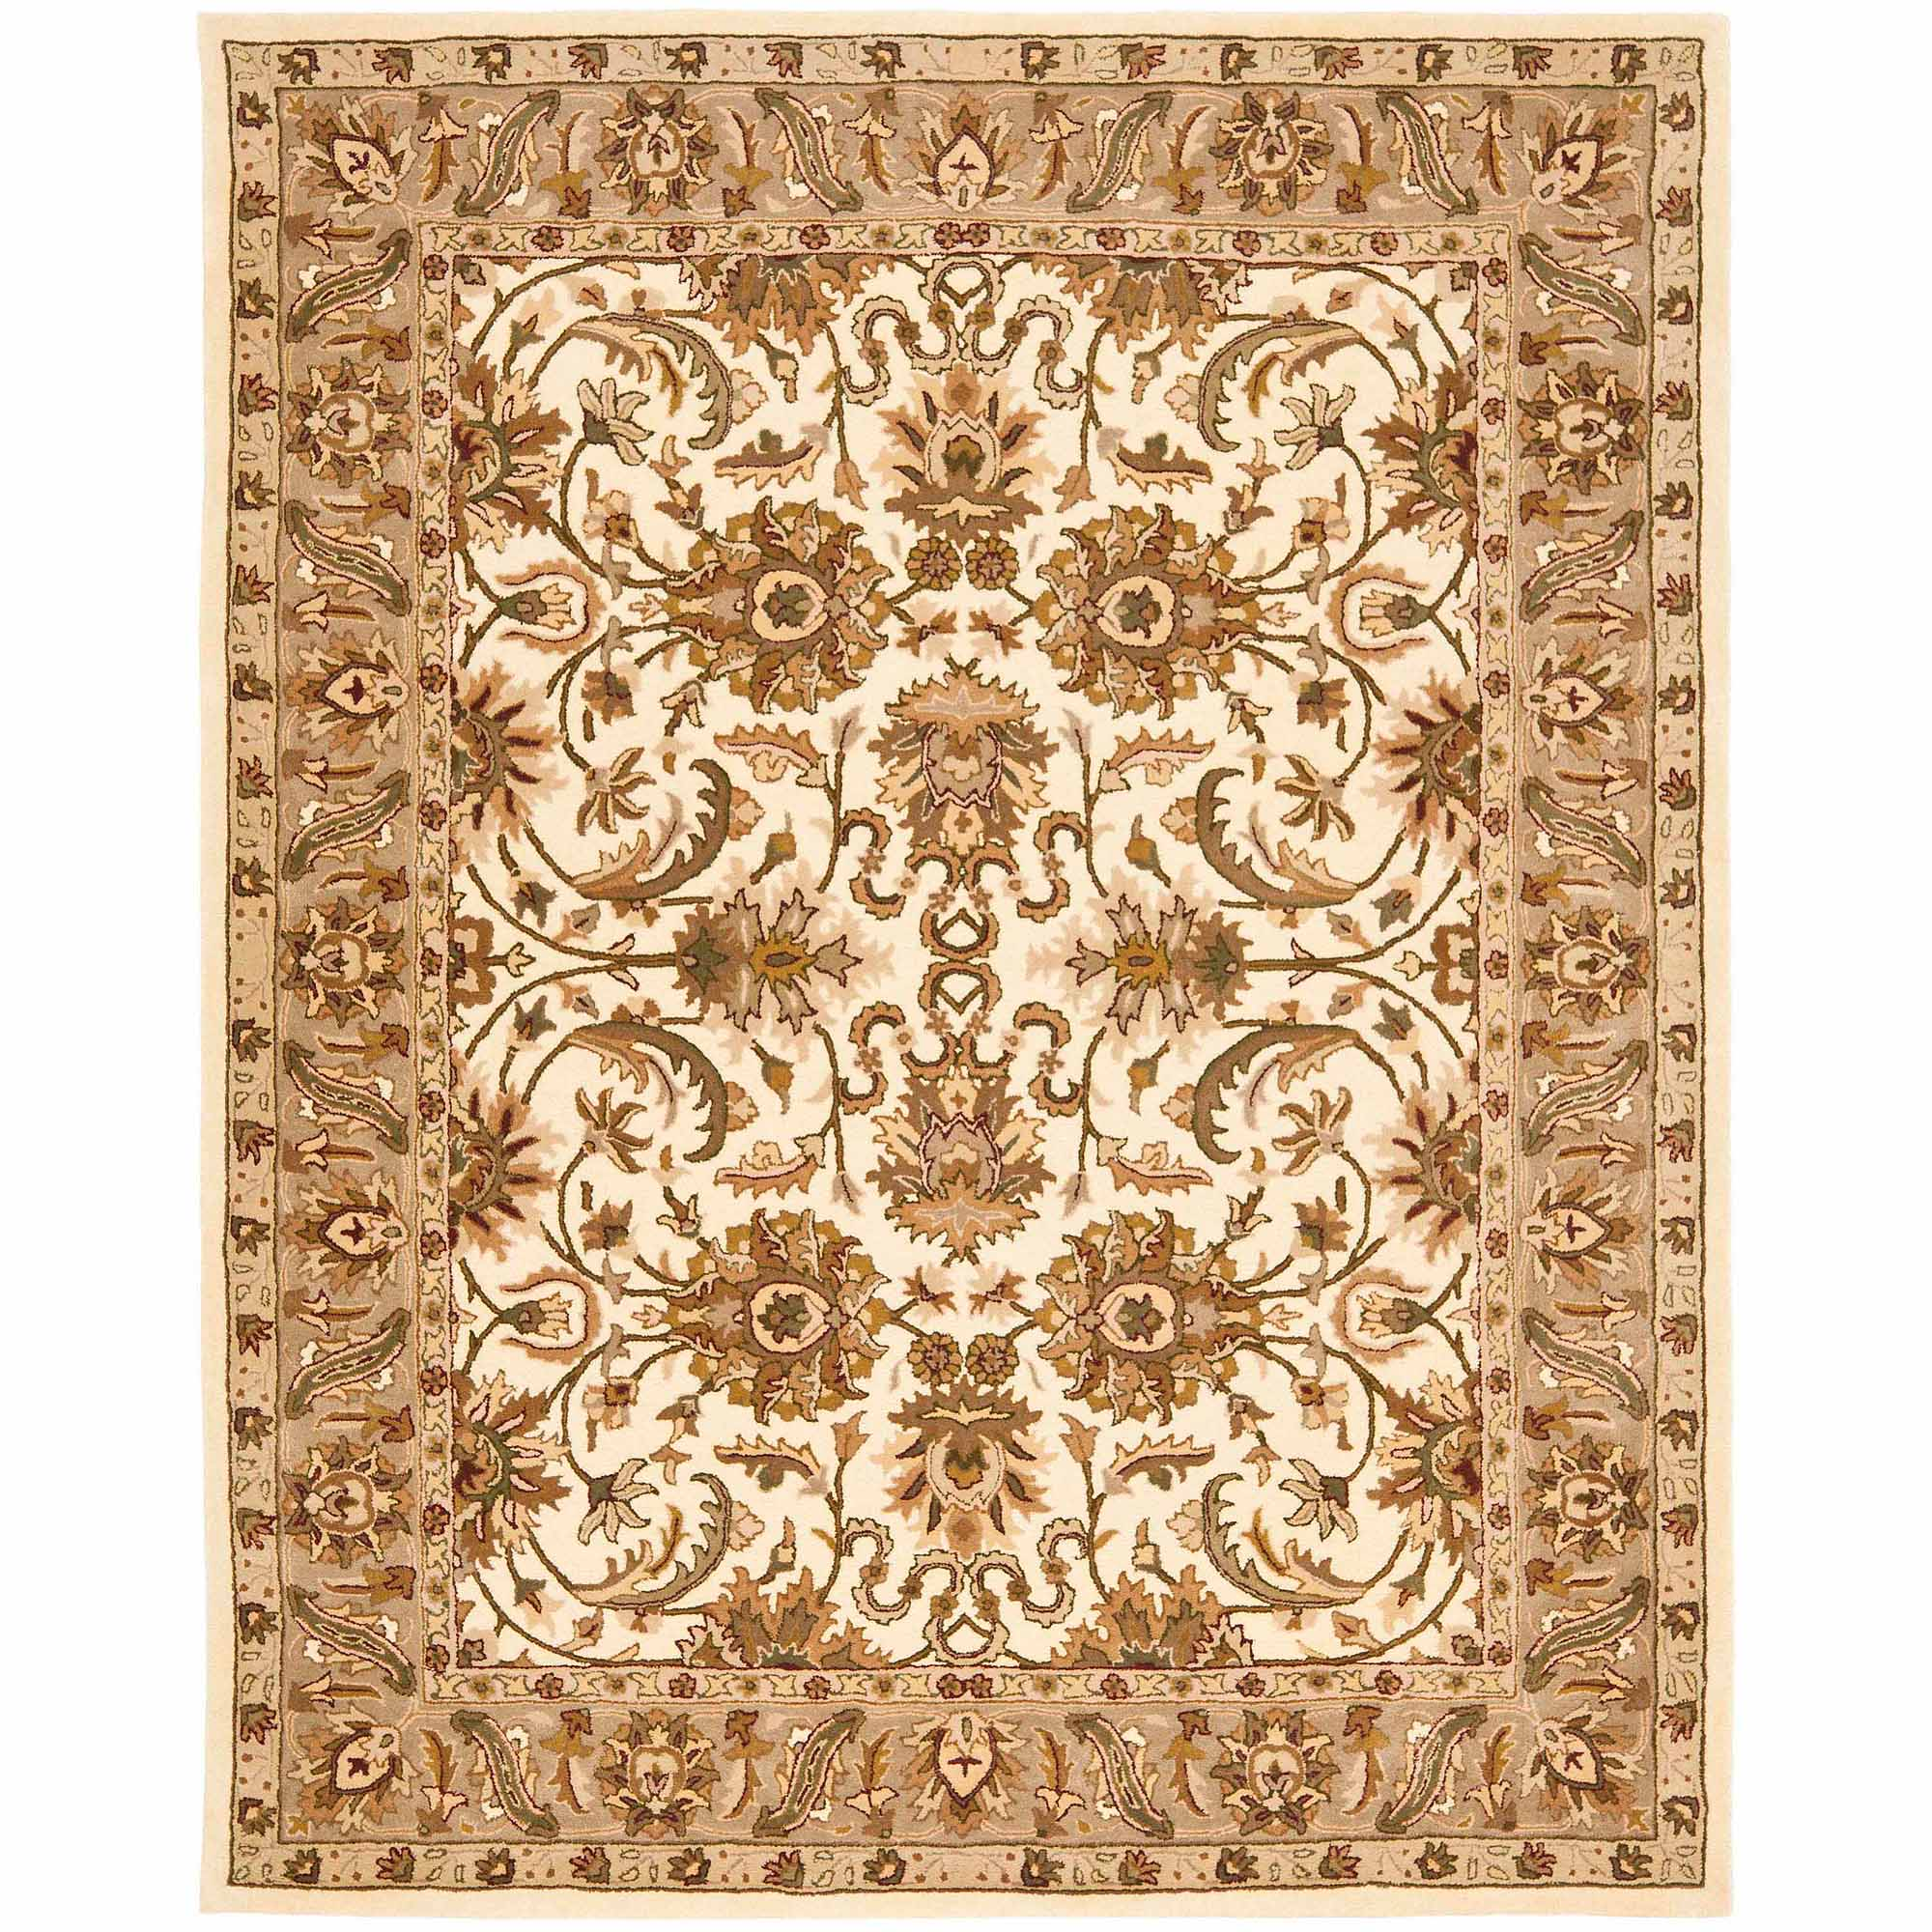 Safavieh Dynasty Hand Knotted Wool Area Rug